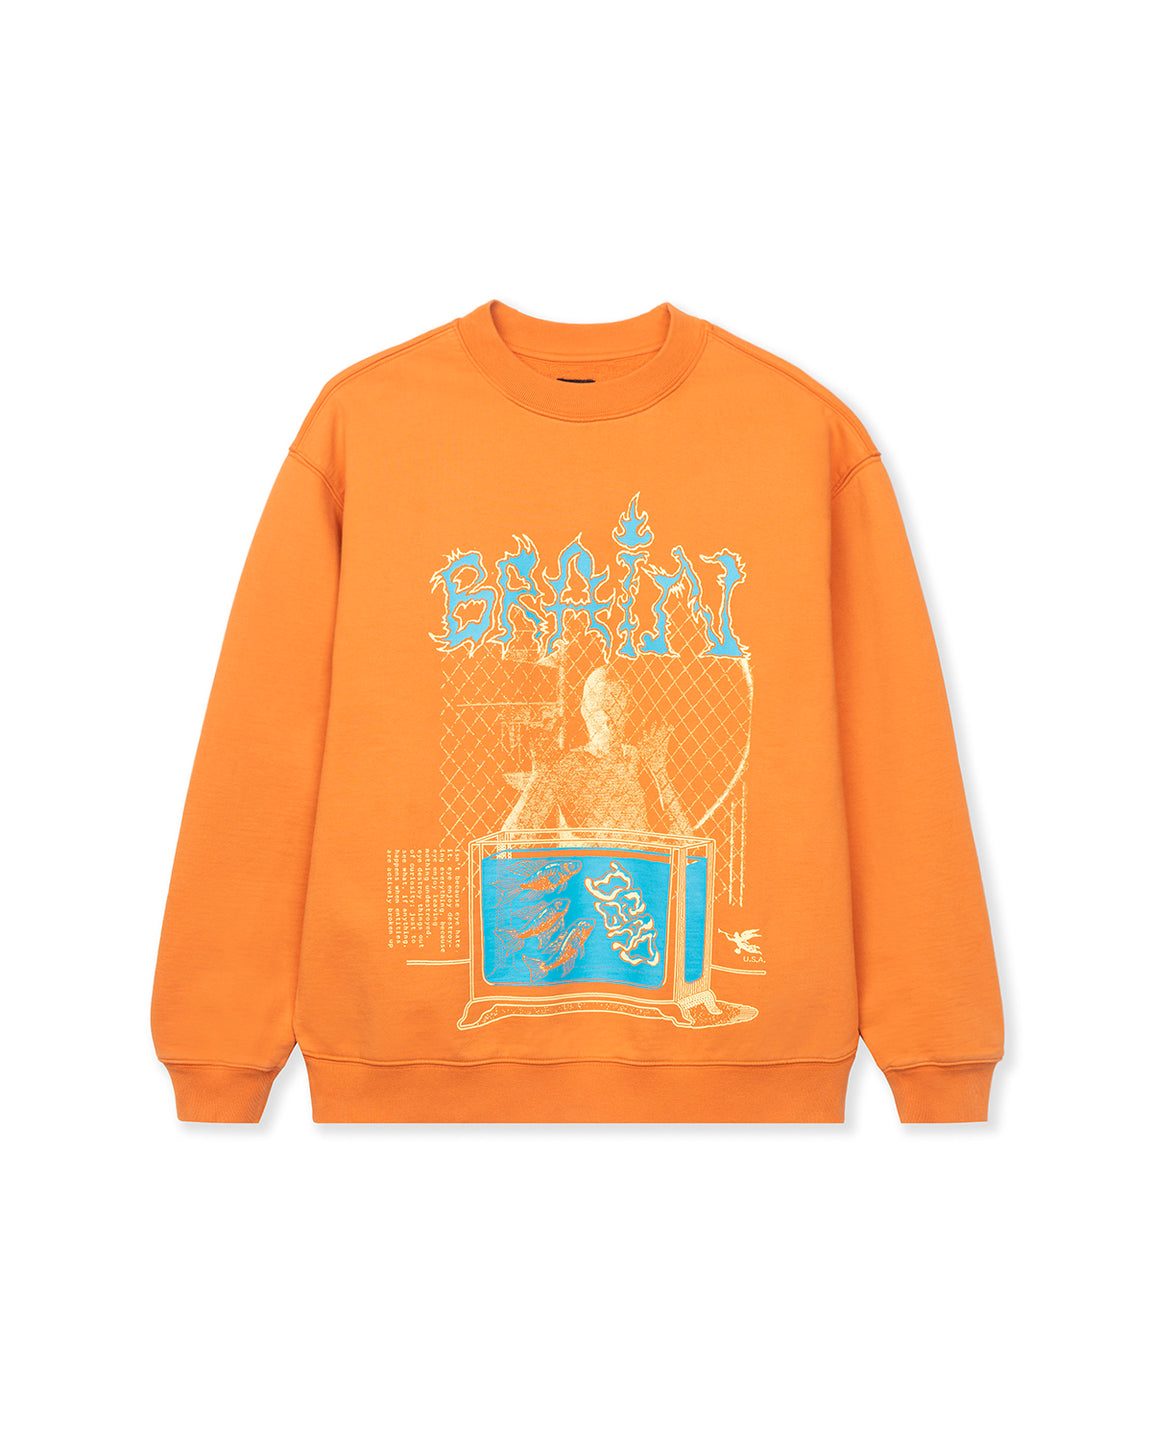 Fish Tank Crewneck Sweatshirt - Orange